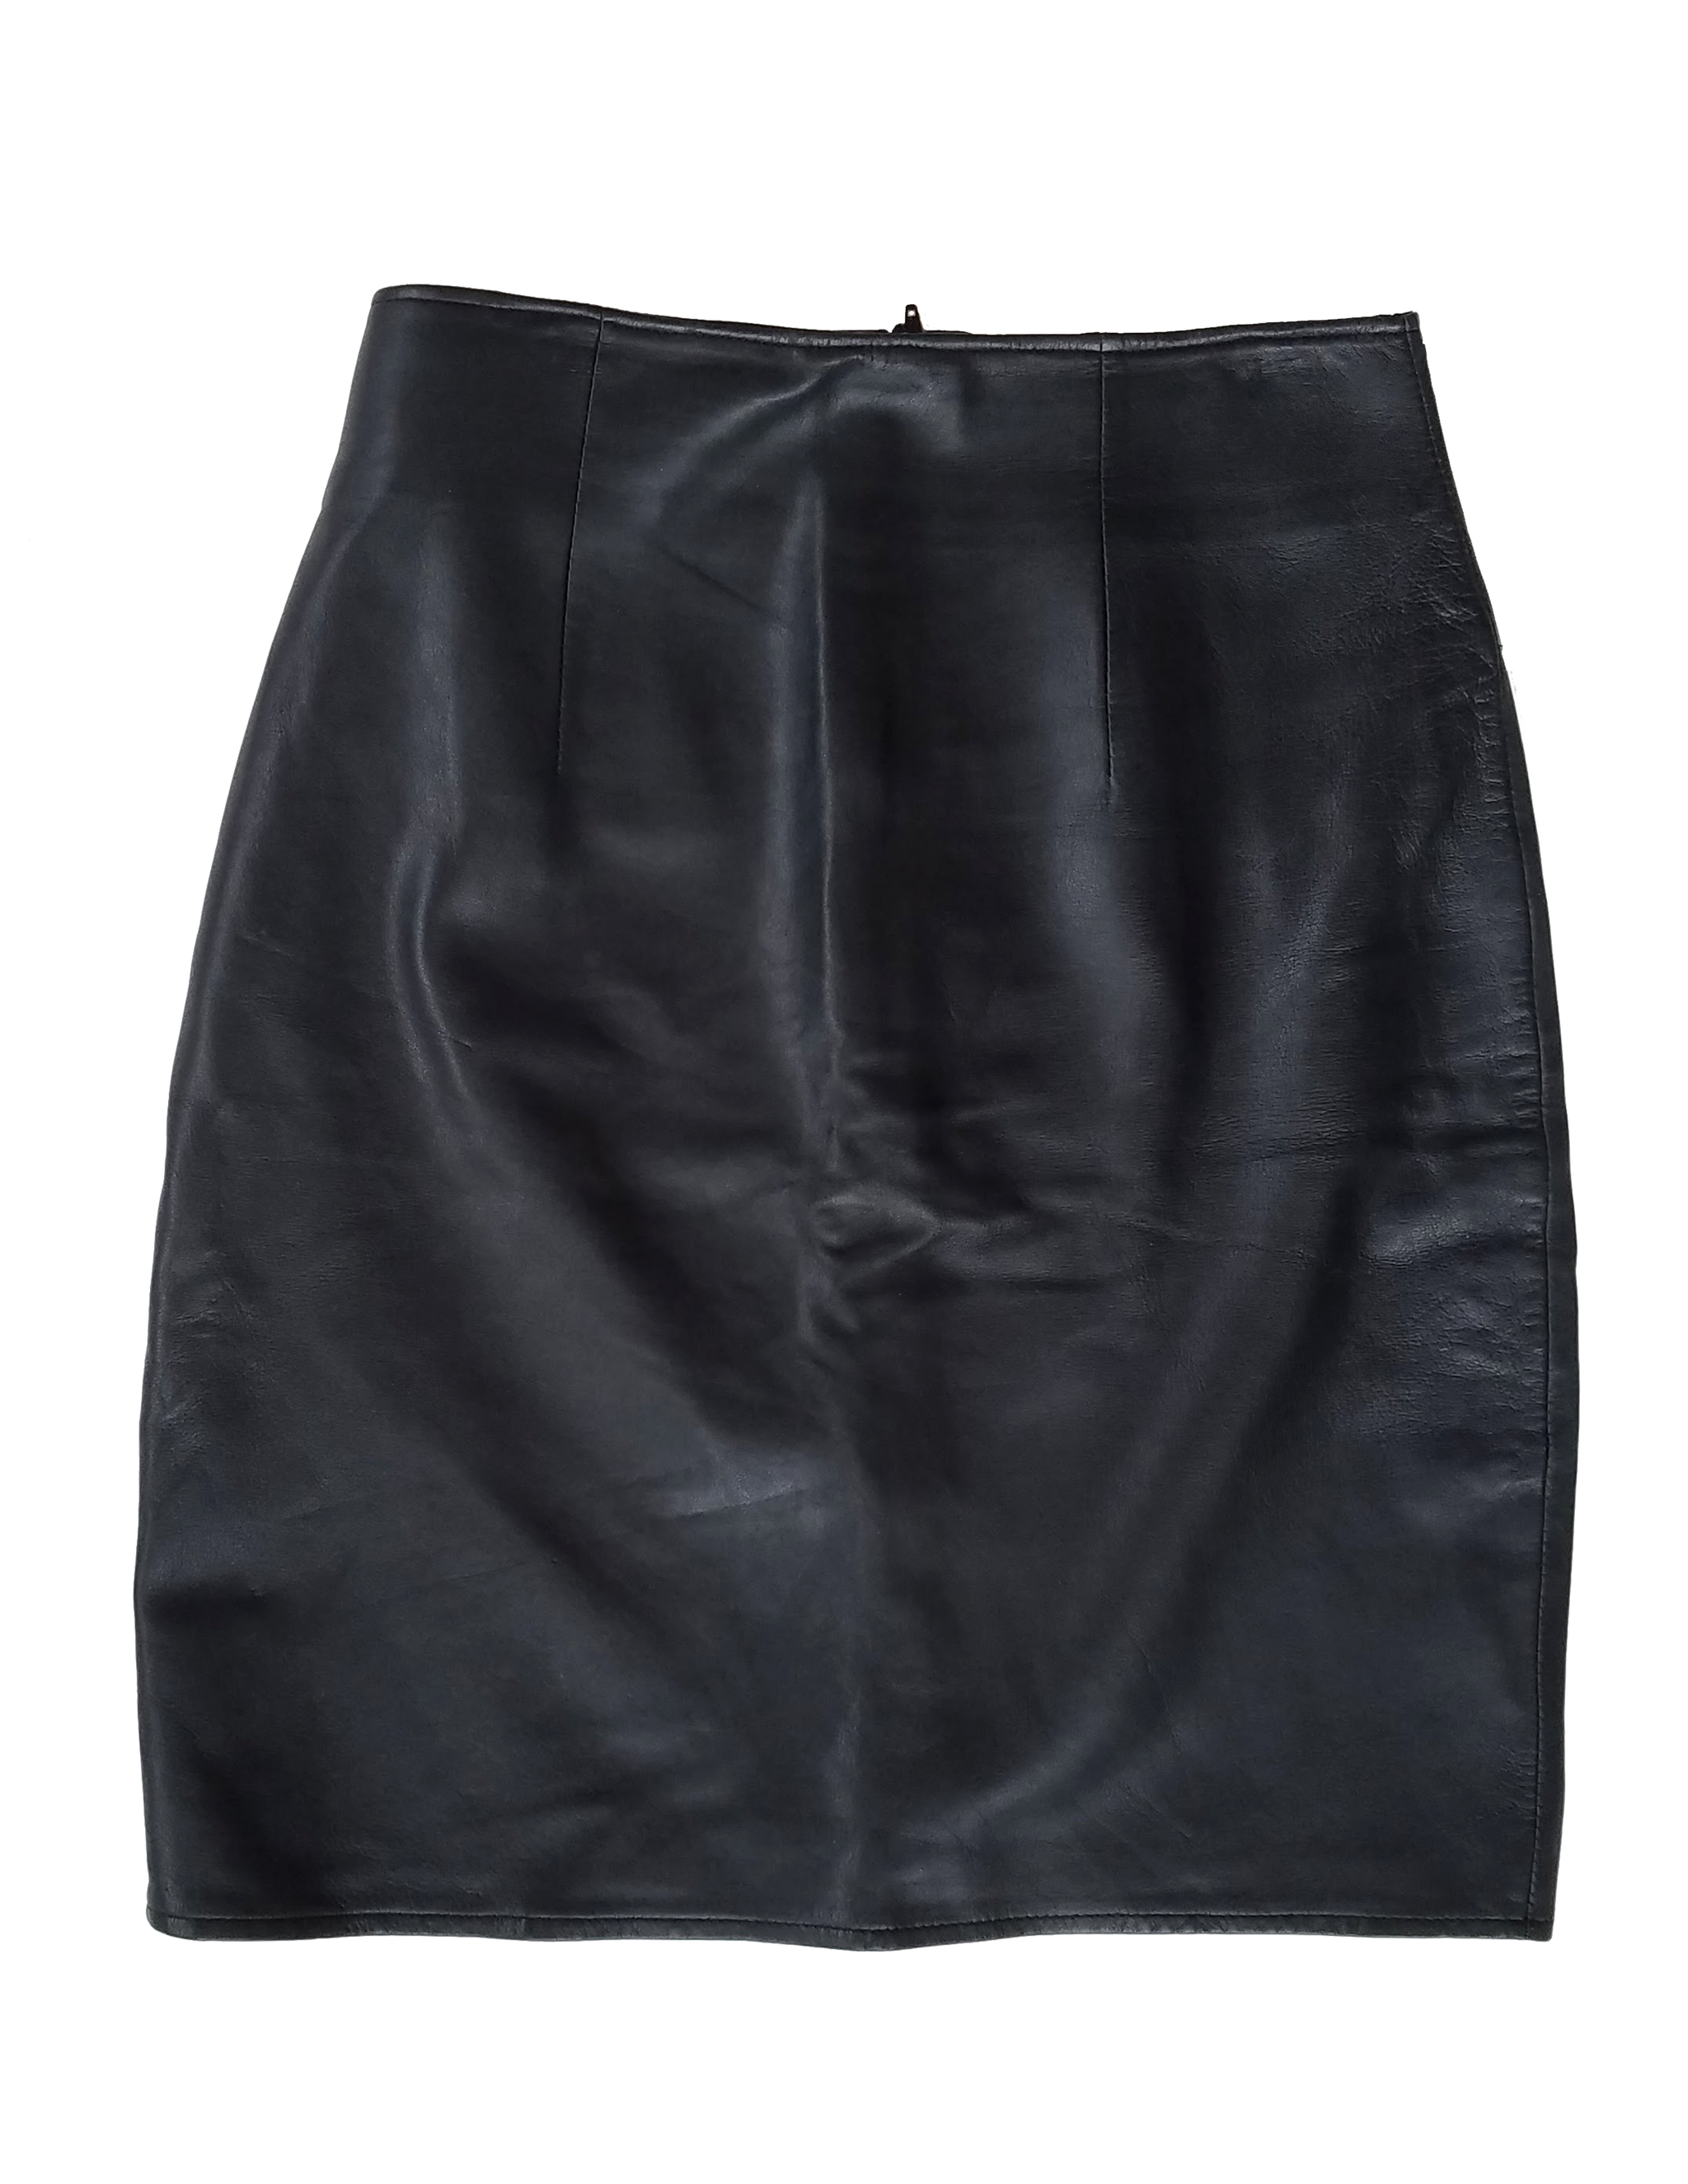 Vintage 90's Black Leather Mini Skirt